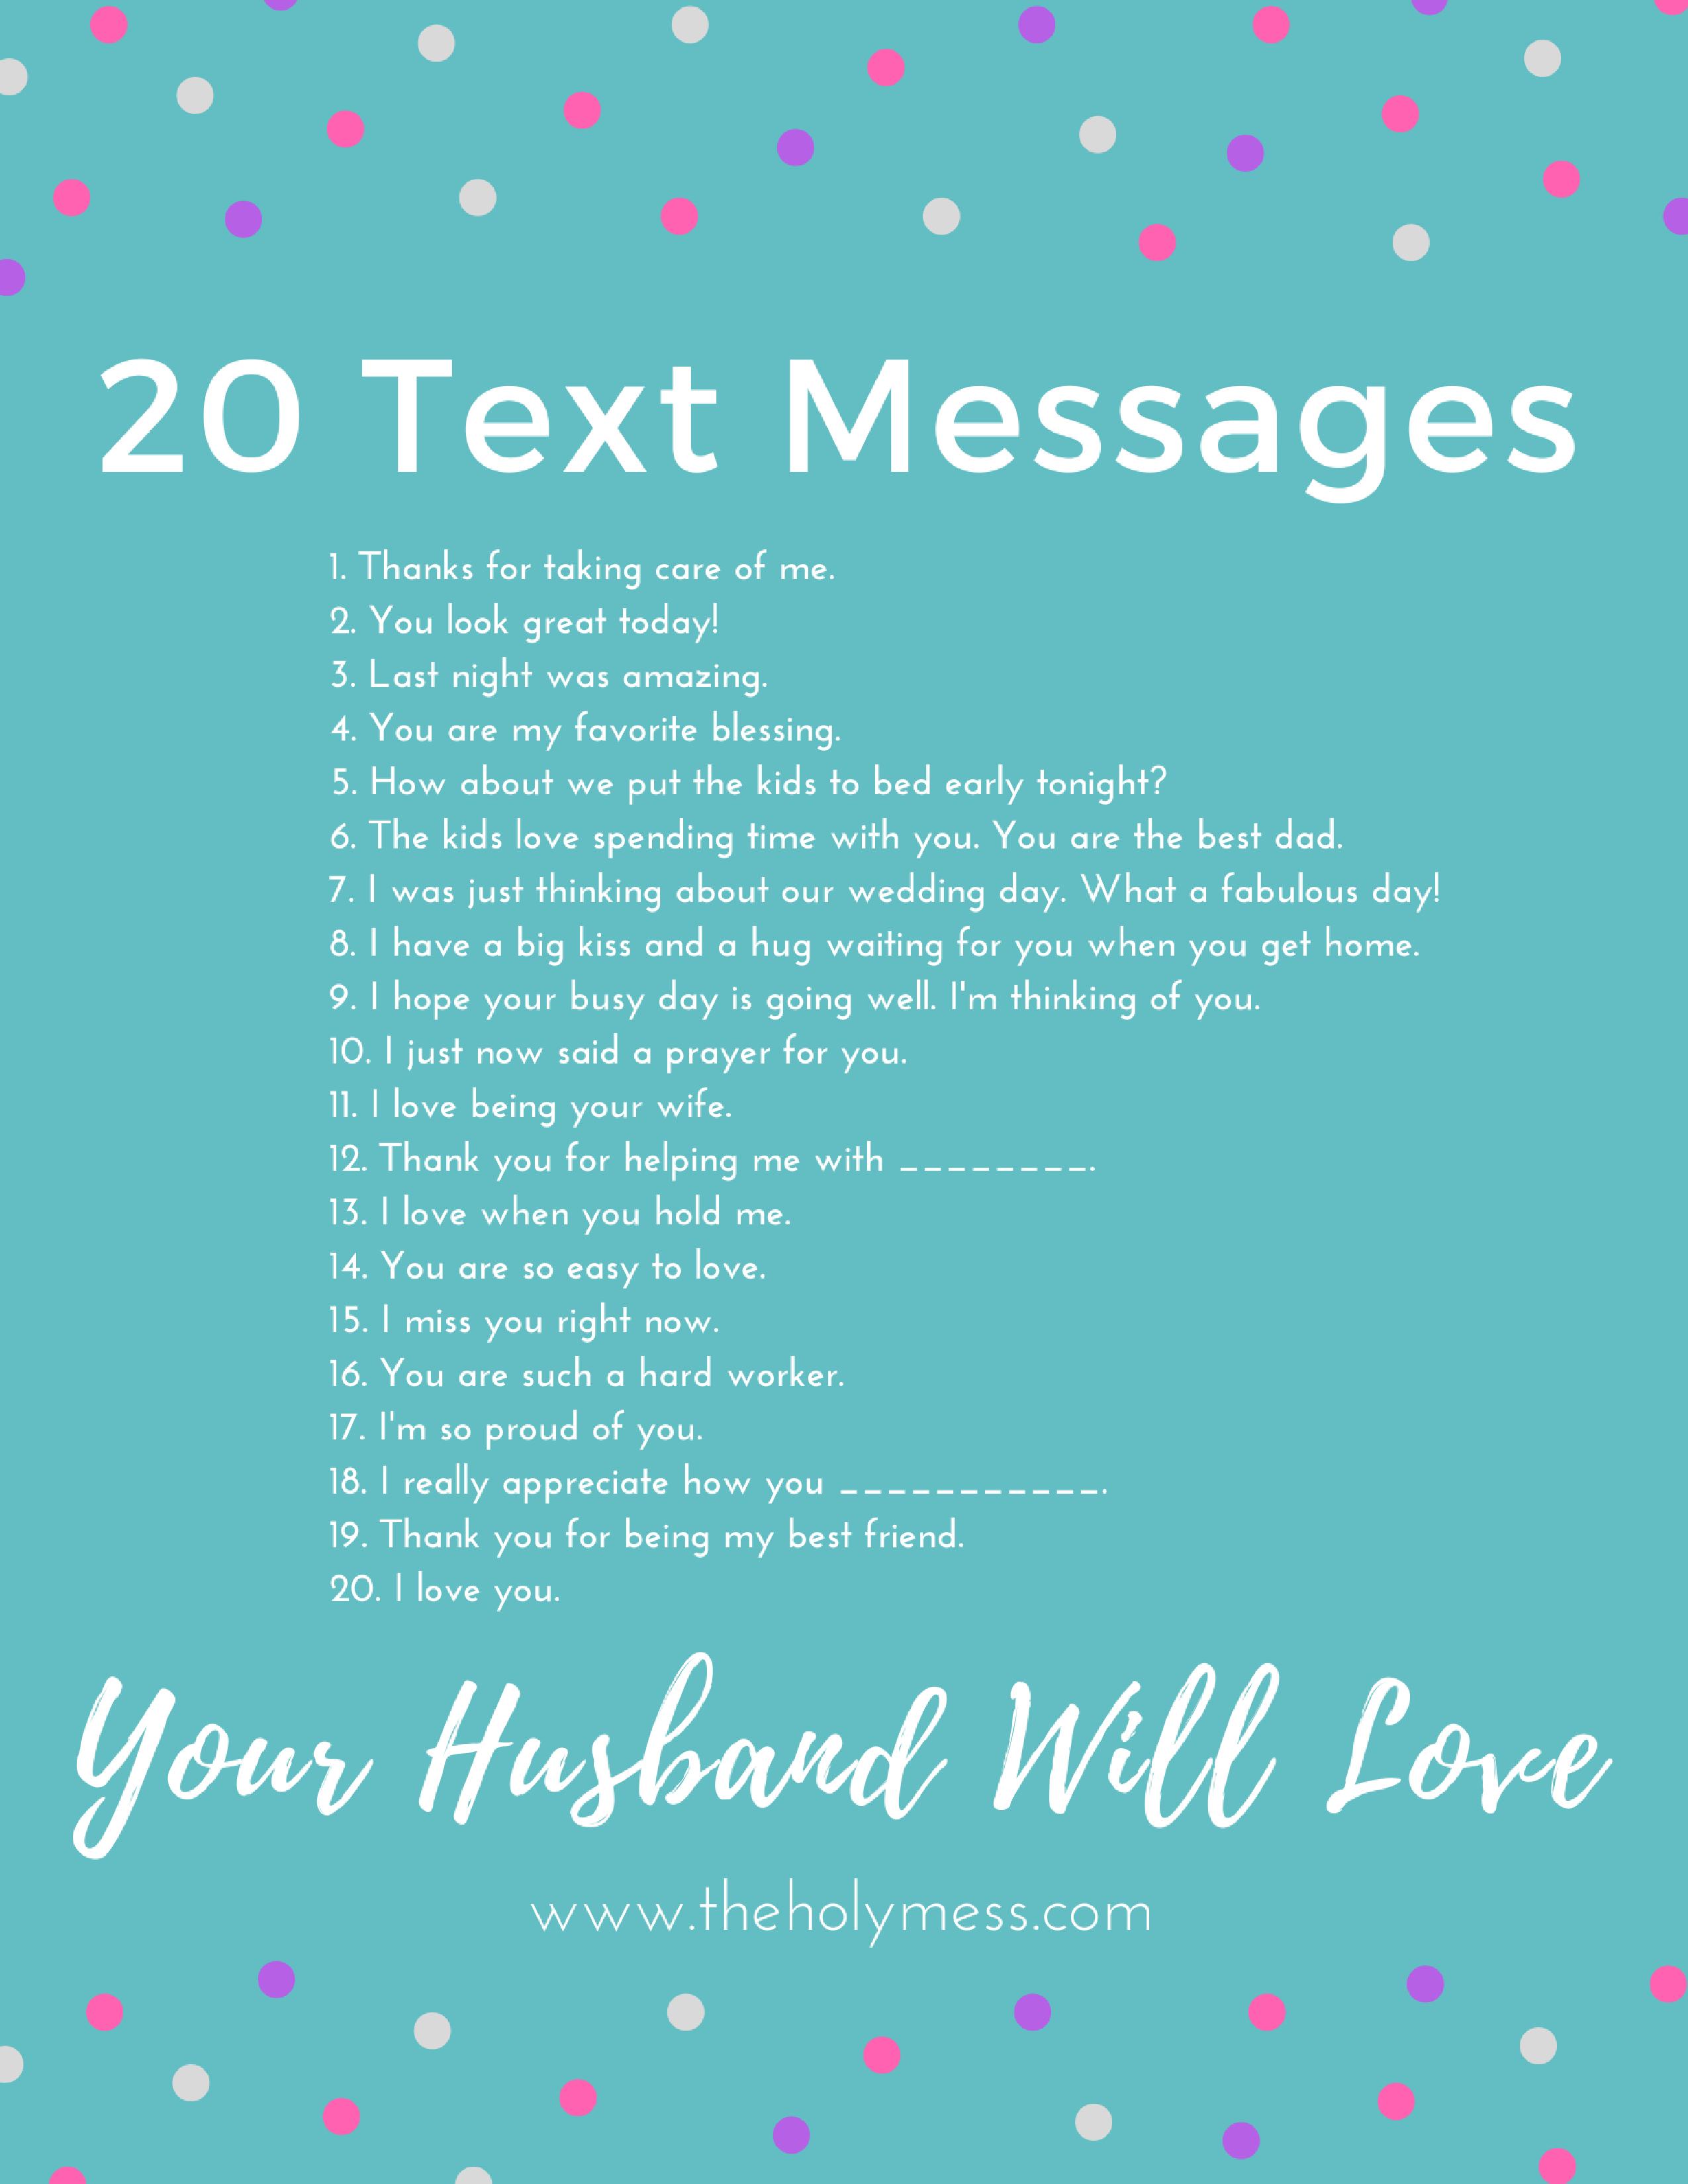 20 Text Messages Your Husband Will Love | TOP Pins from Top